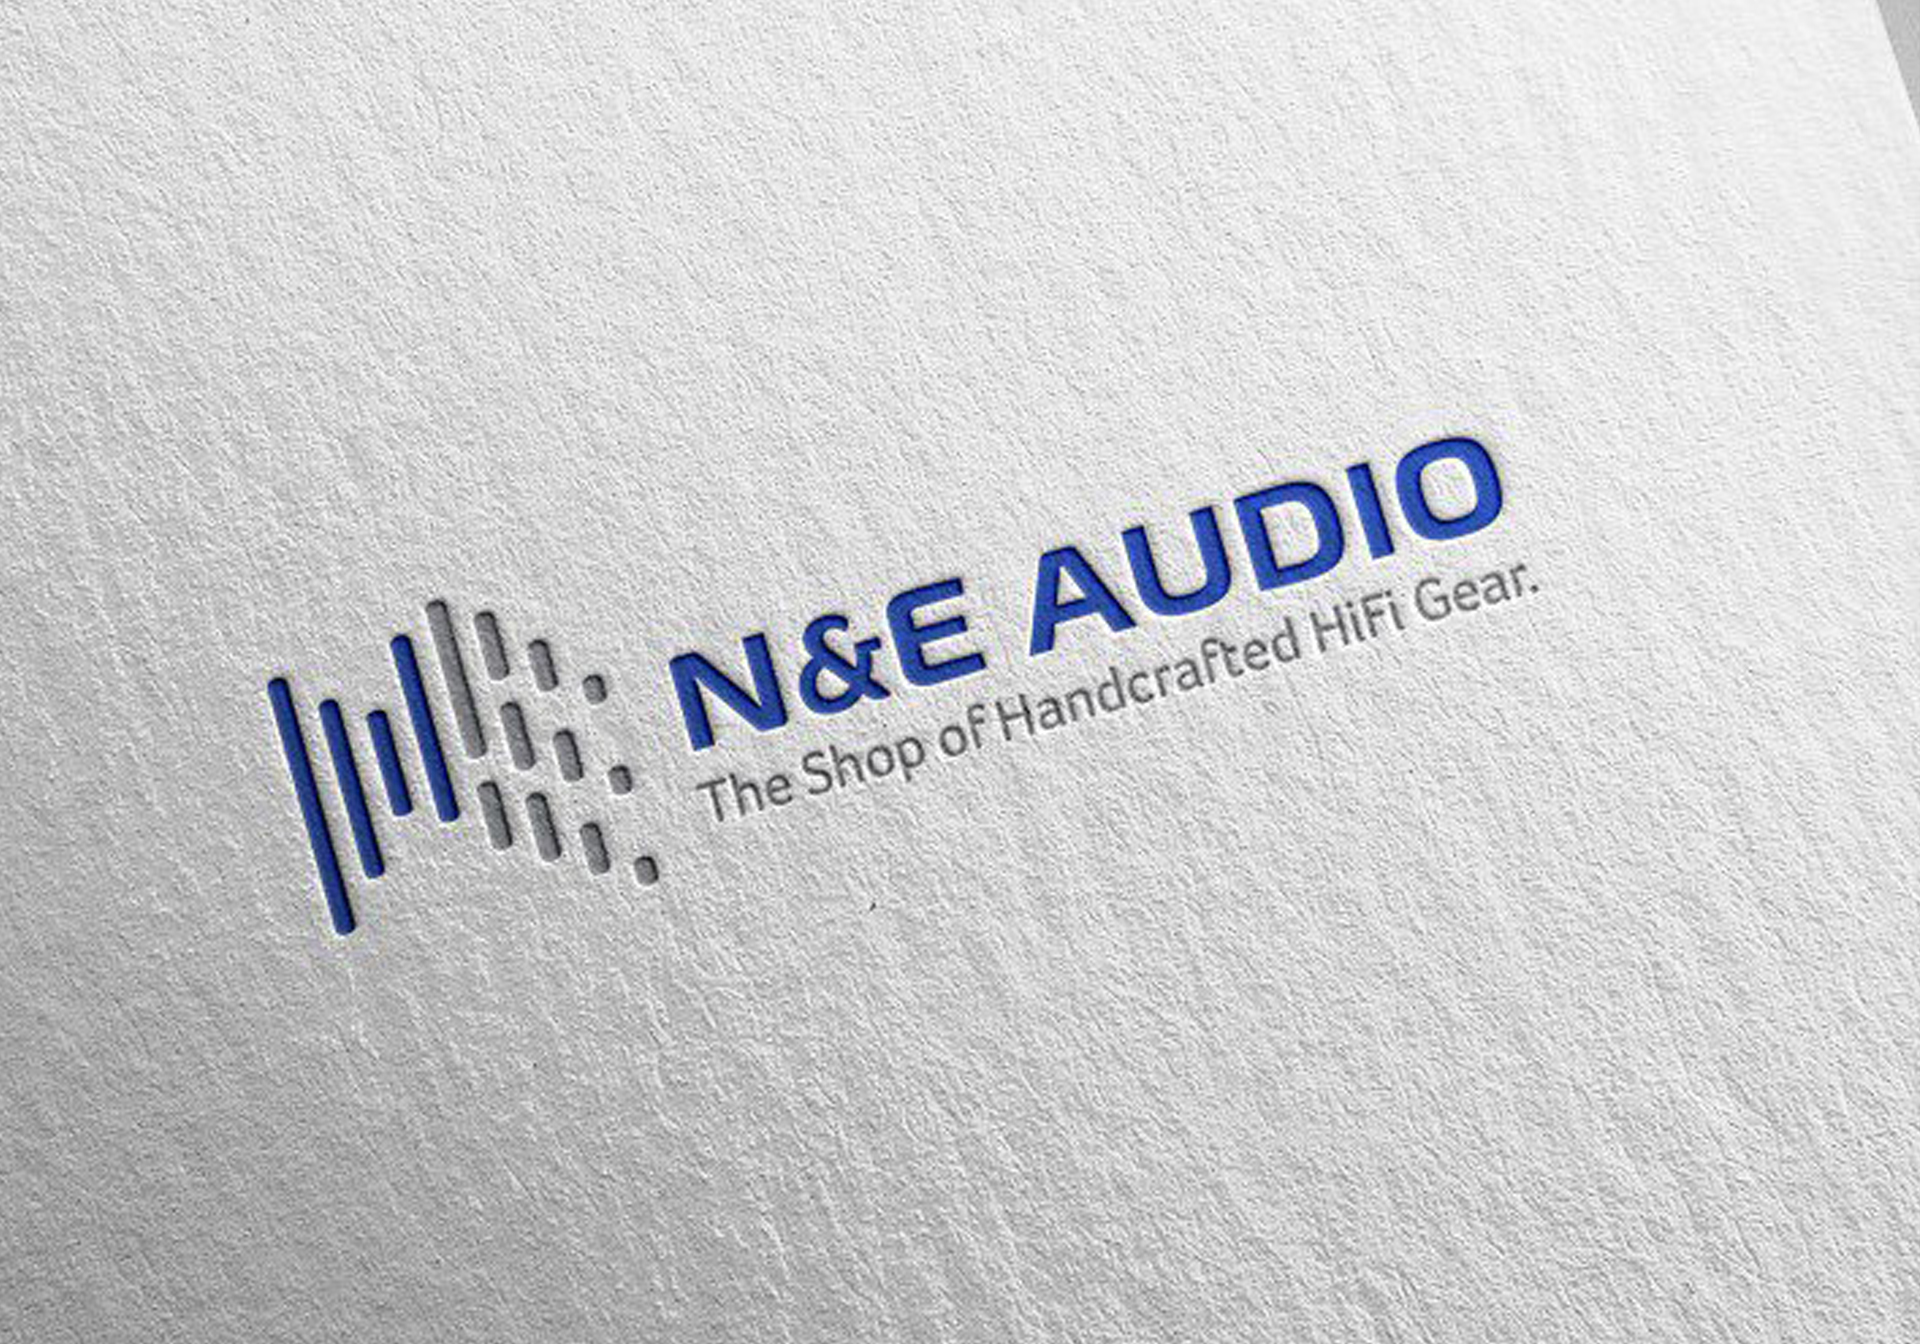 N&E Audio Logo Design